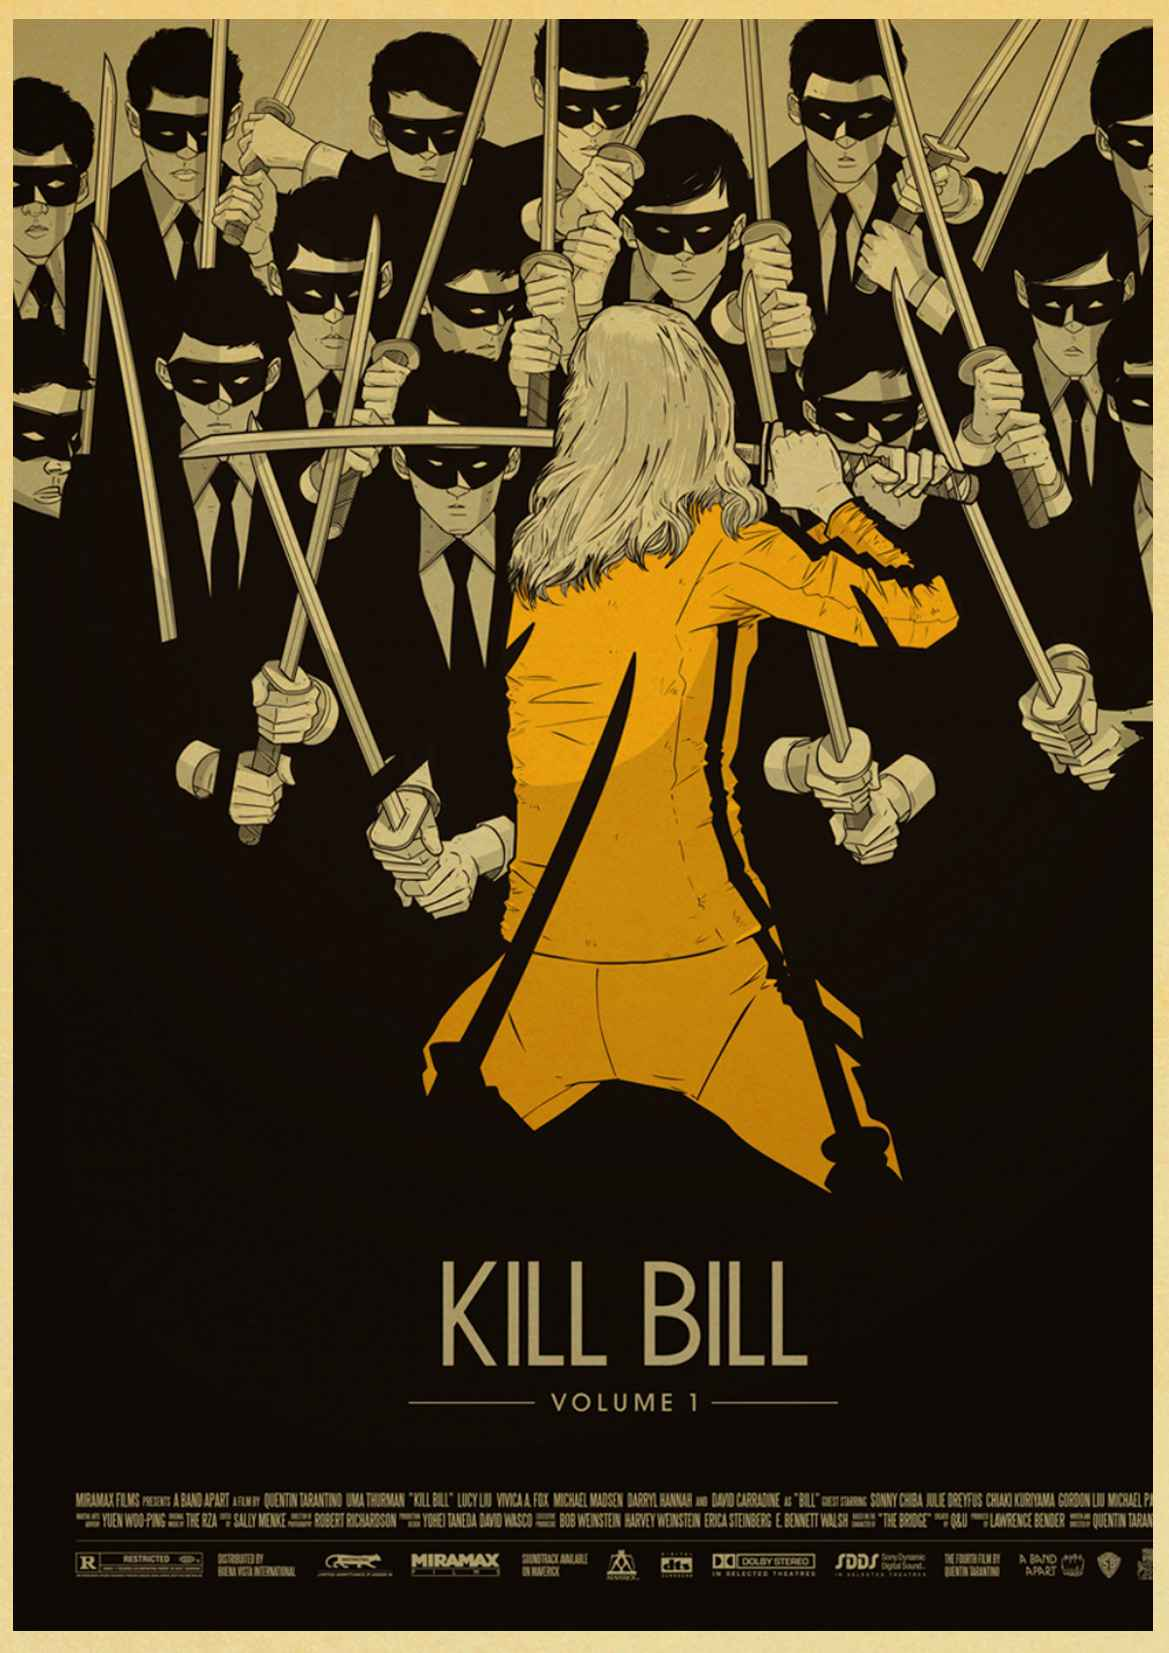 US $1 83 16% OFF|Vintage Kill Bill Vol 1/classic Quentin movie posters home  decora kraft paper High Quality Printed Painting wall stickers-in Wall